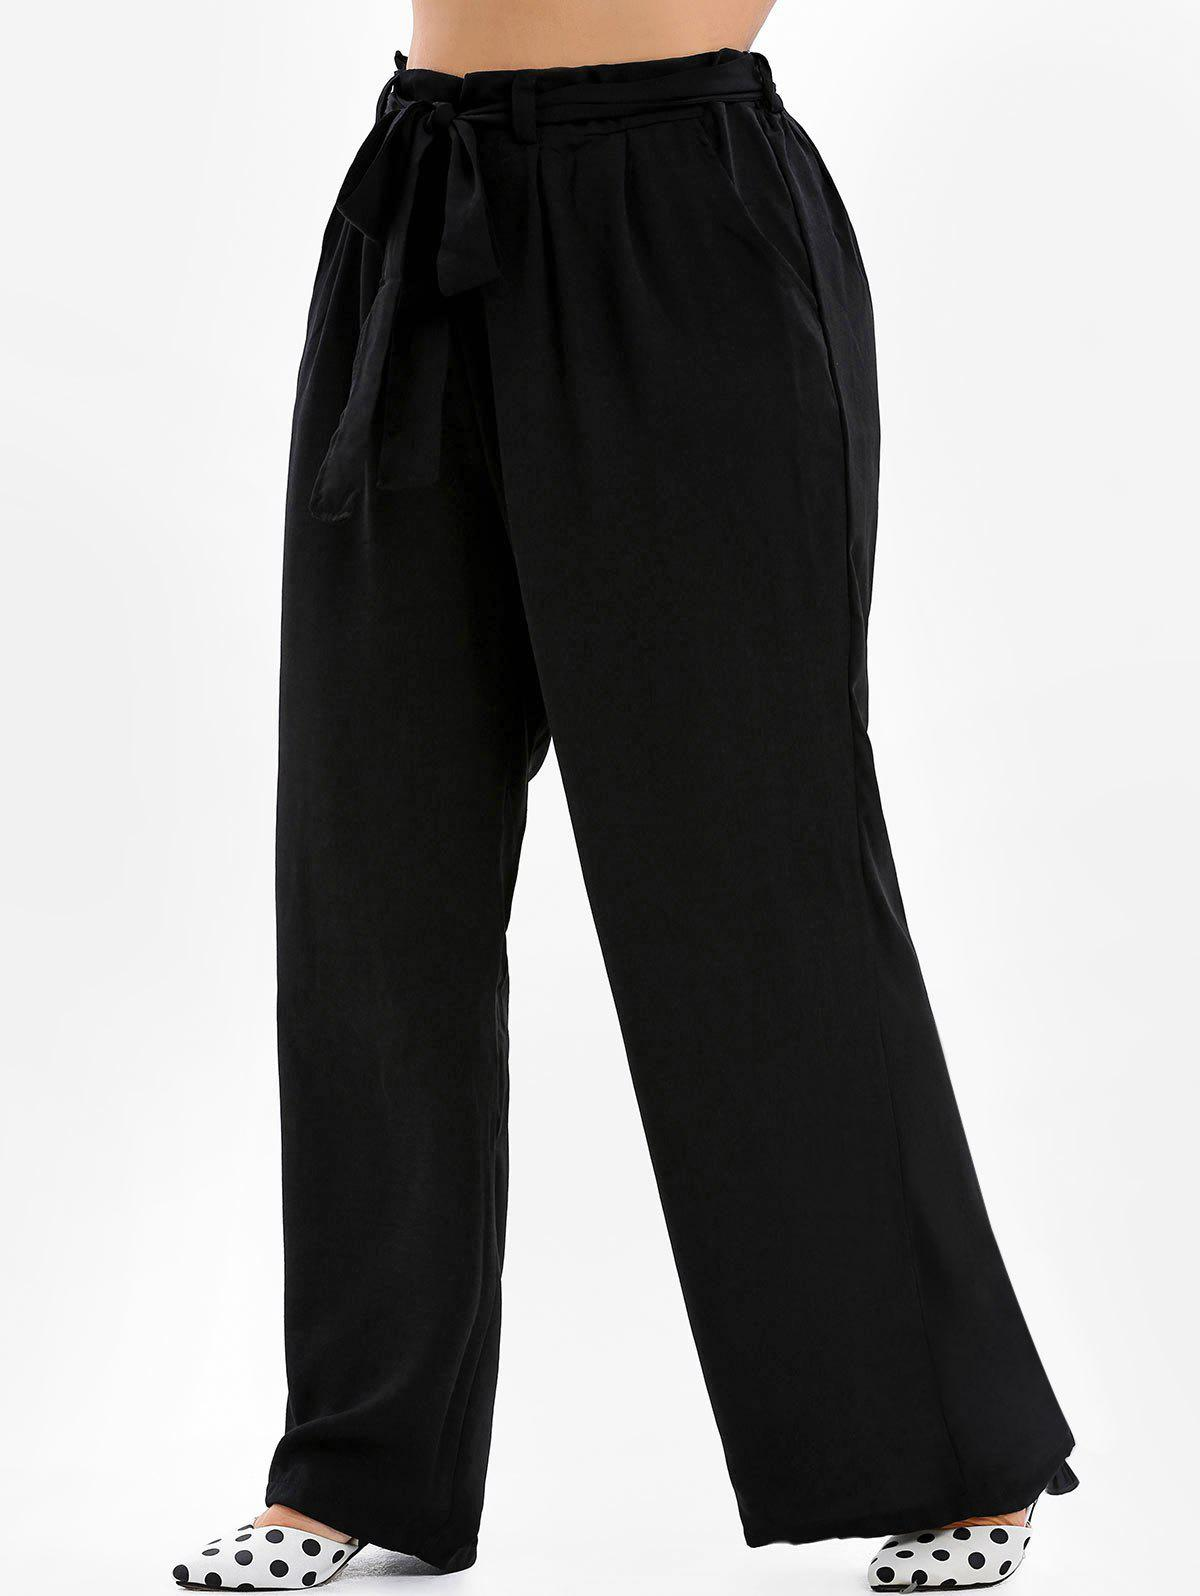 Fashion Plus Size Belted Wide Leg Pants